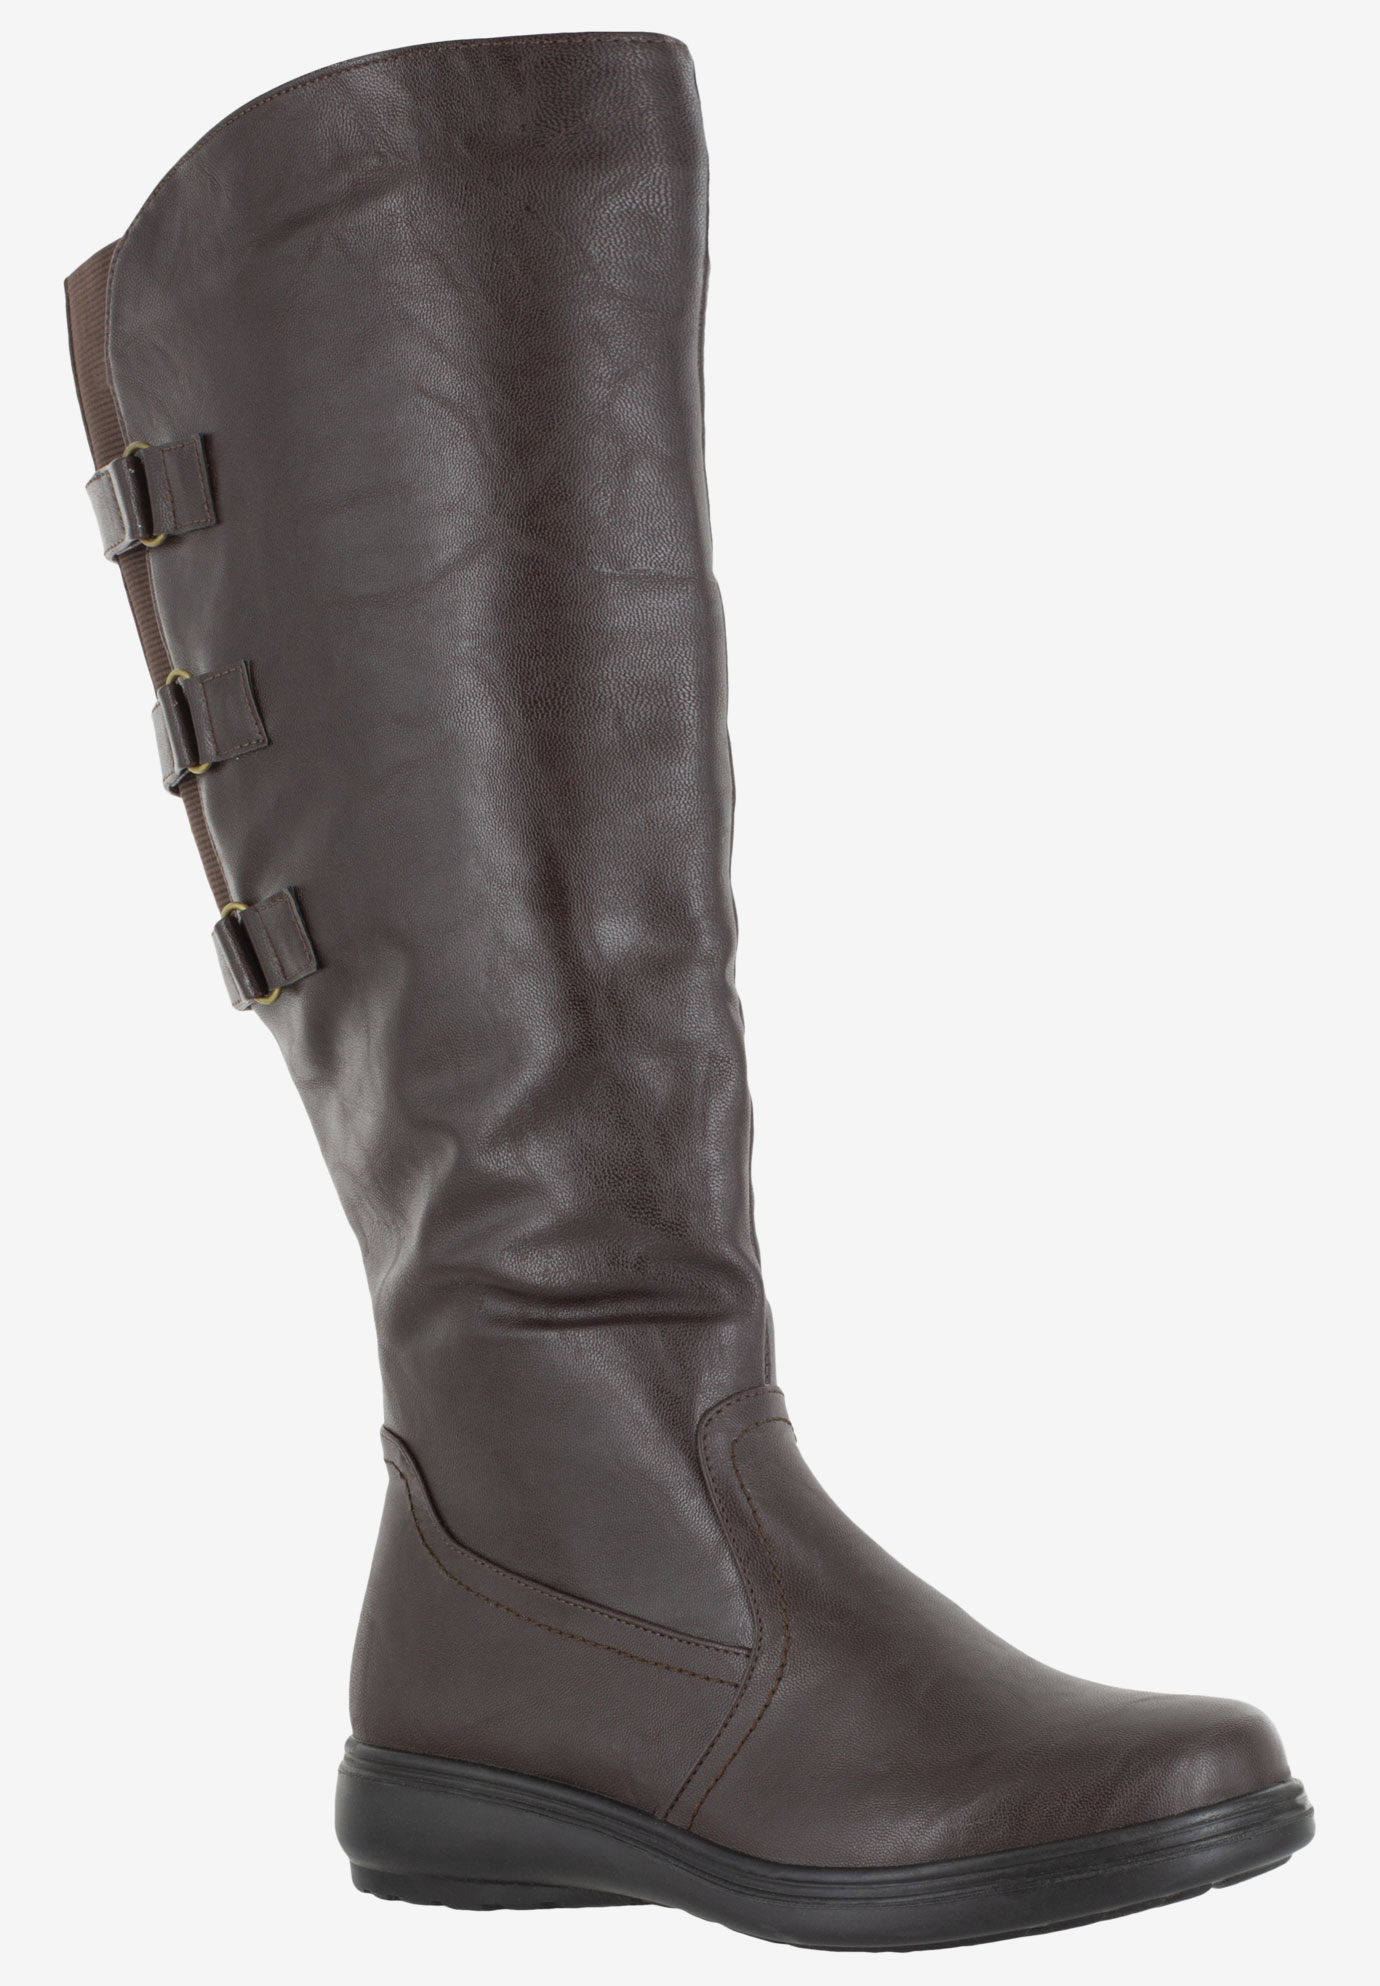 Presley Plus Wide Calf Boot by Easy Street,